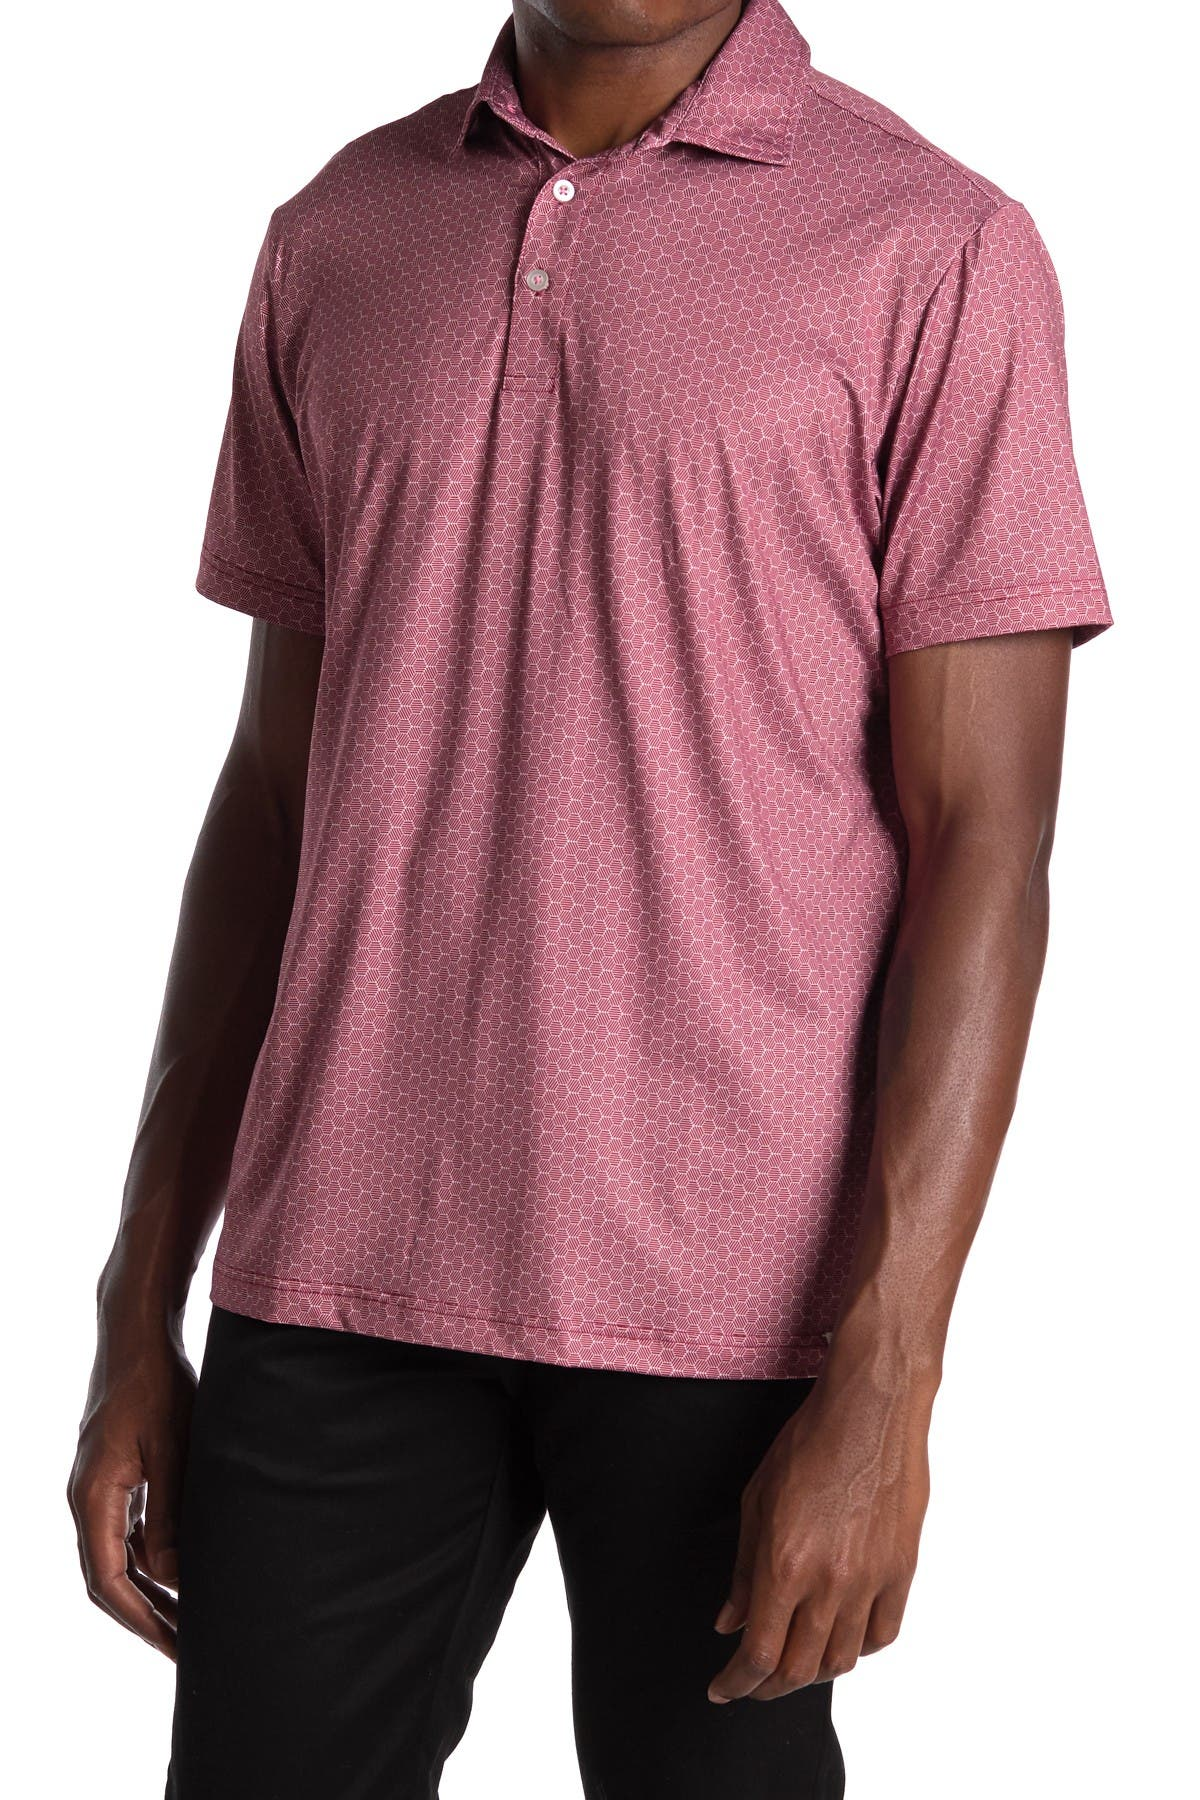 Image of TailorByrd Printed Golf Polo